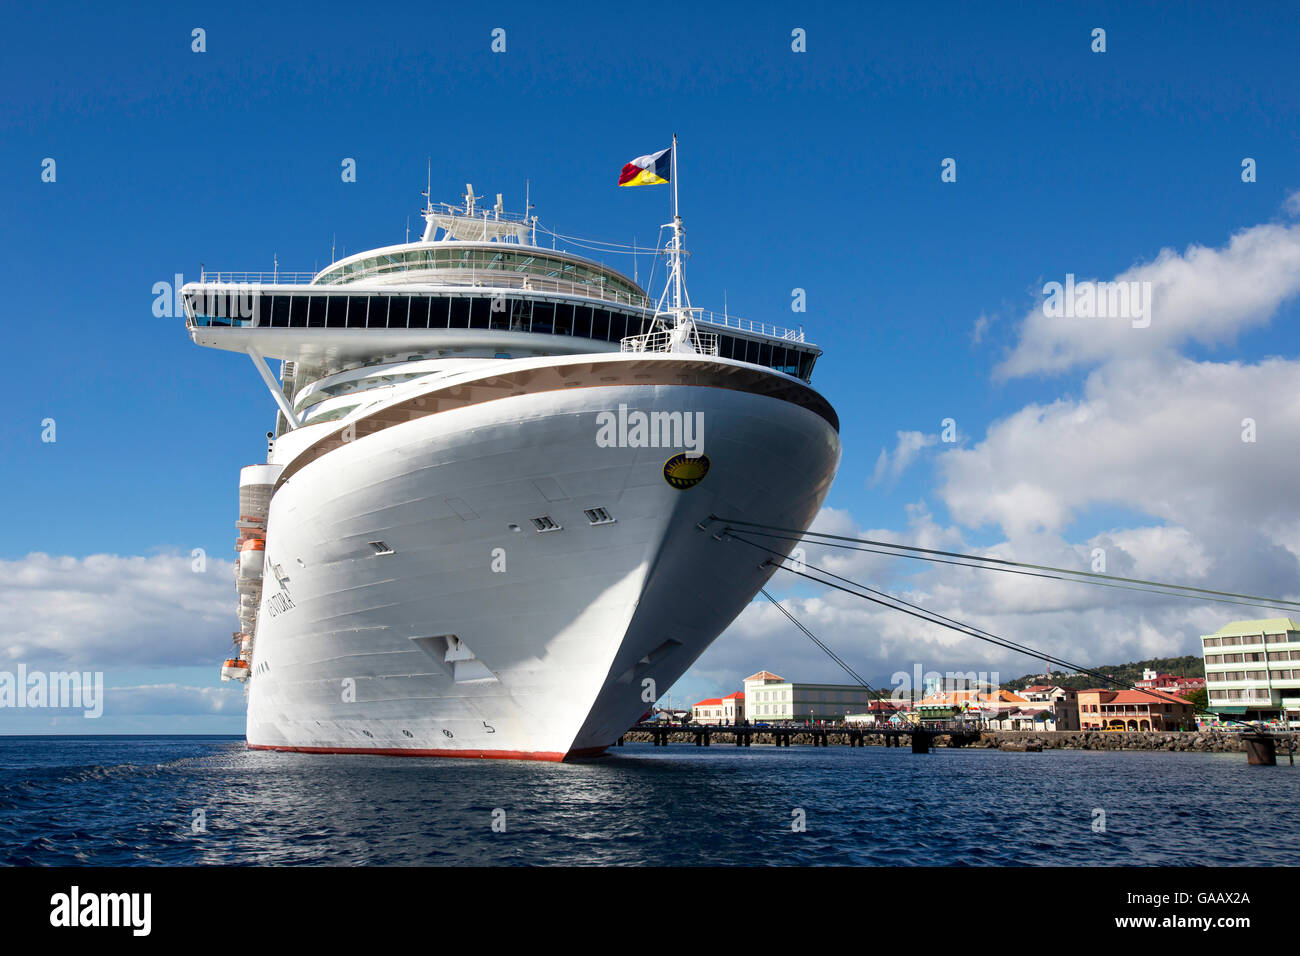 Front view of a transatlantic cruise ship docked in Dominica, Caribbean. All non-editorial uses must be cleared - Stock Image